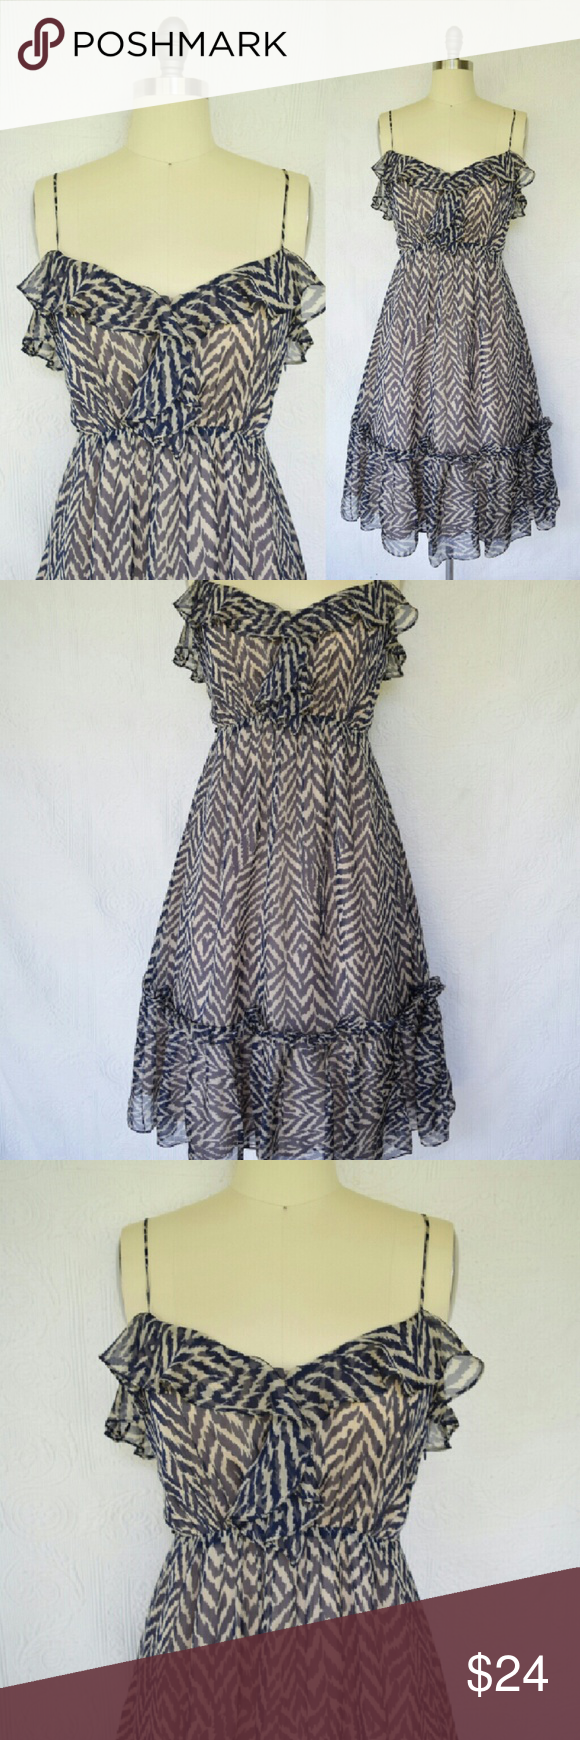 Milly silk peasant ruffle navy animal print dress Beautiful Milly of New York romantic peasant dress. Stunning blue and cream Chevron patterned/ animal print silk. Darling ruffle detail on bodice and hemline.  Great pre-owned condition with no noted flaws.  Size 8 Milly Dresses Midi